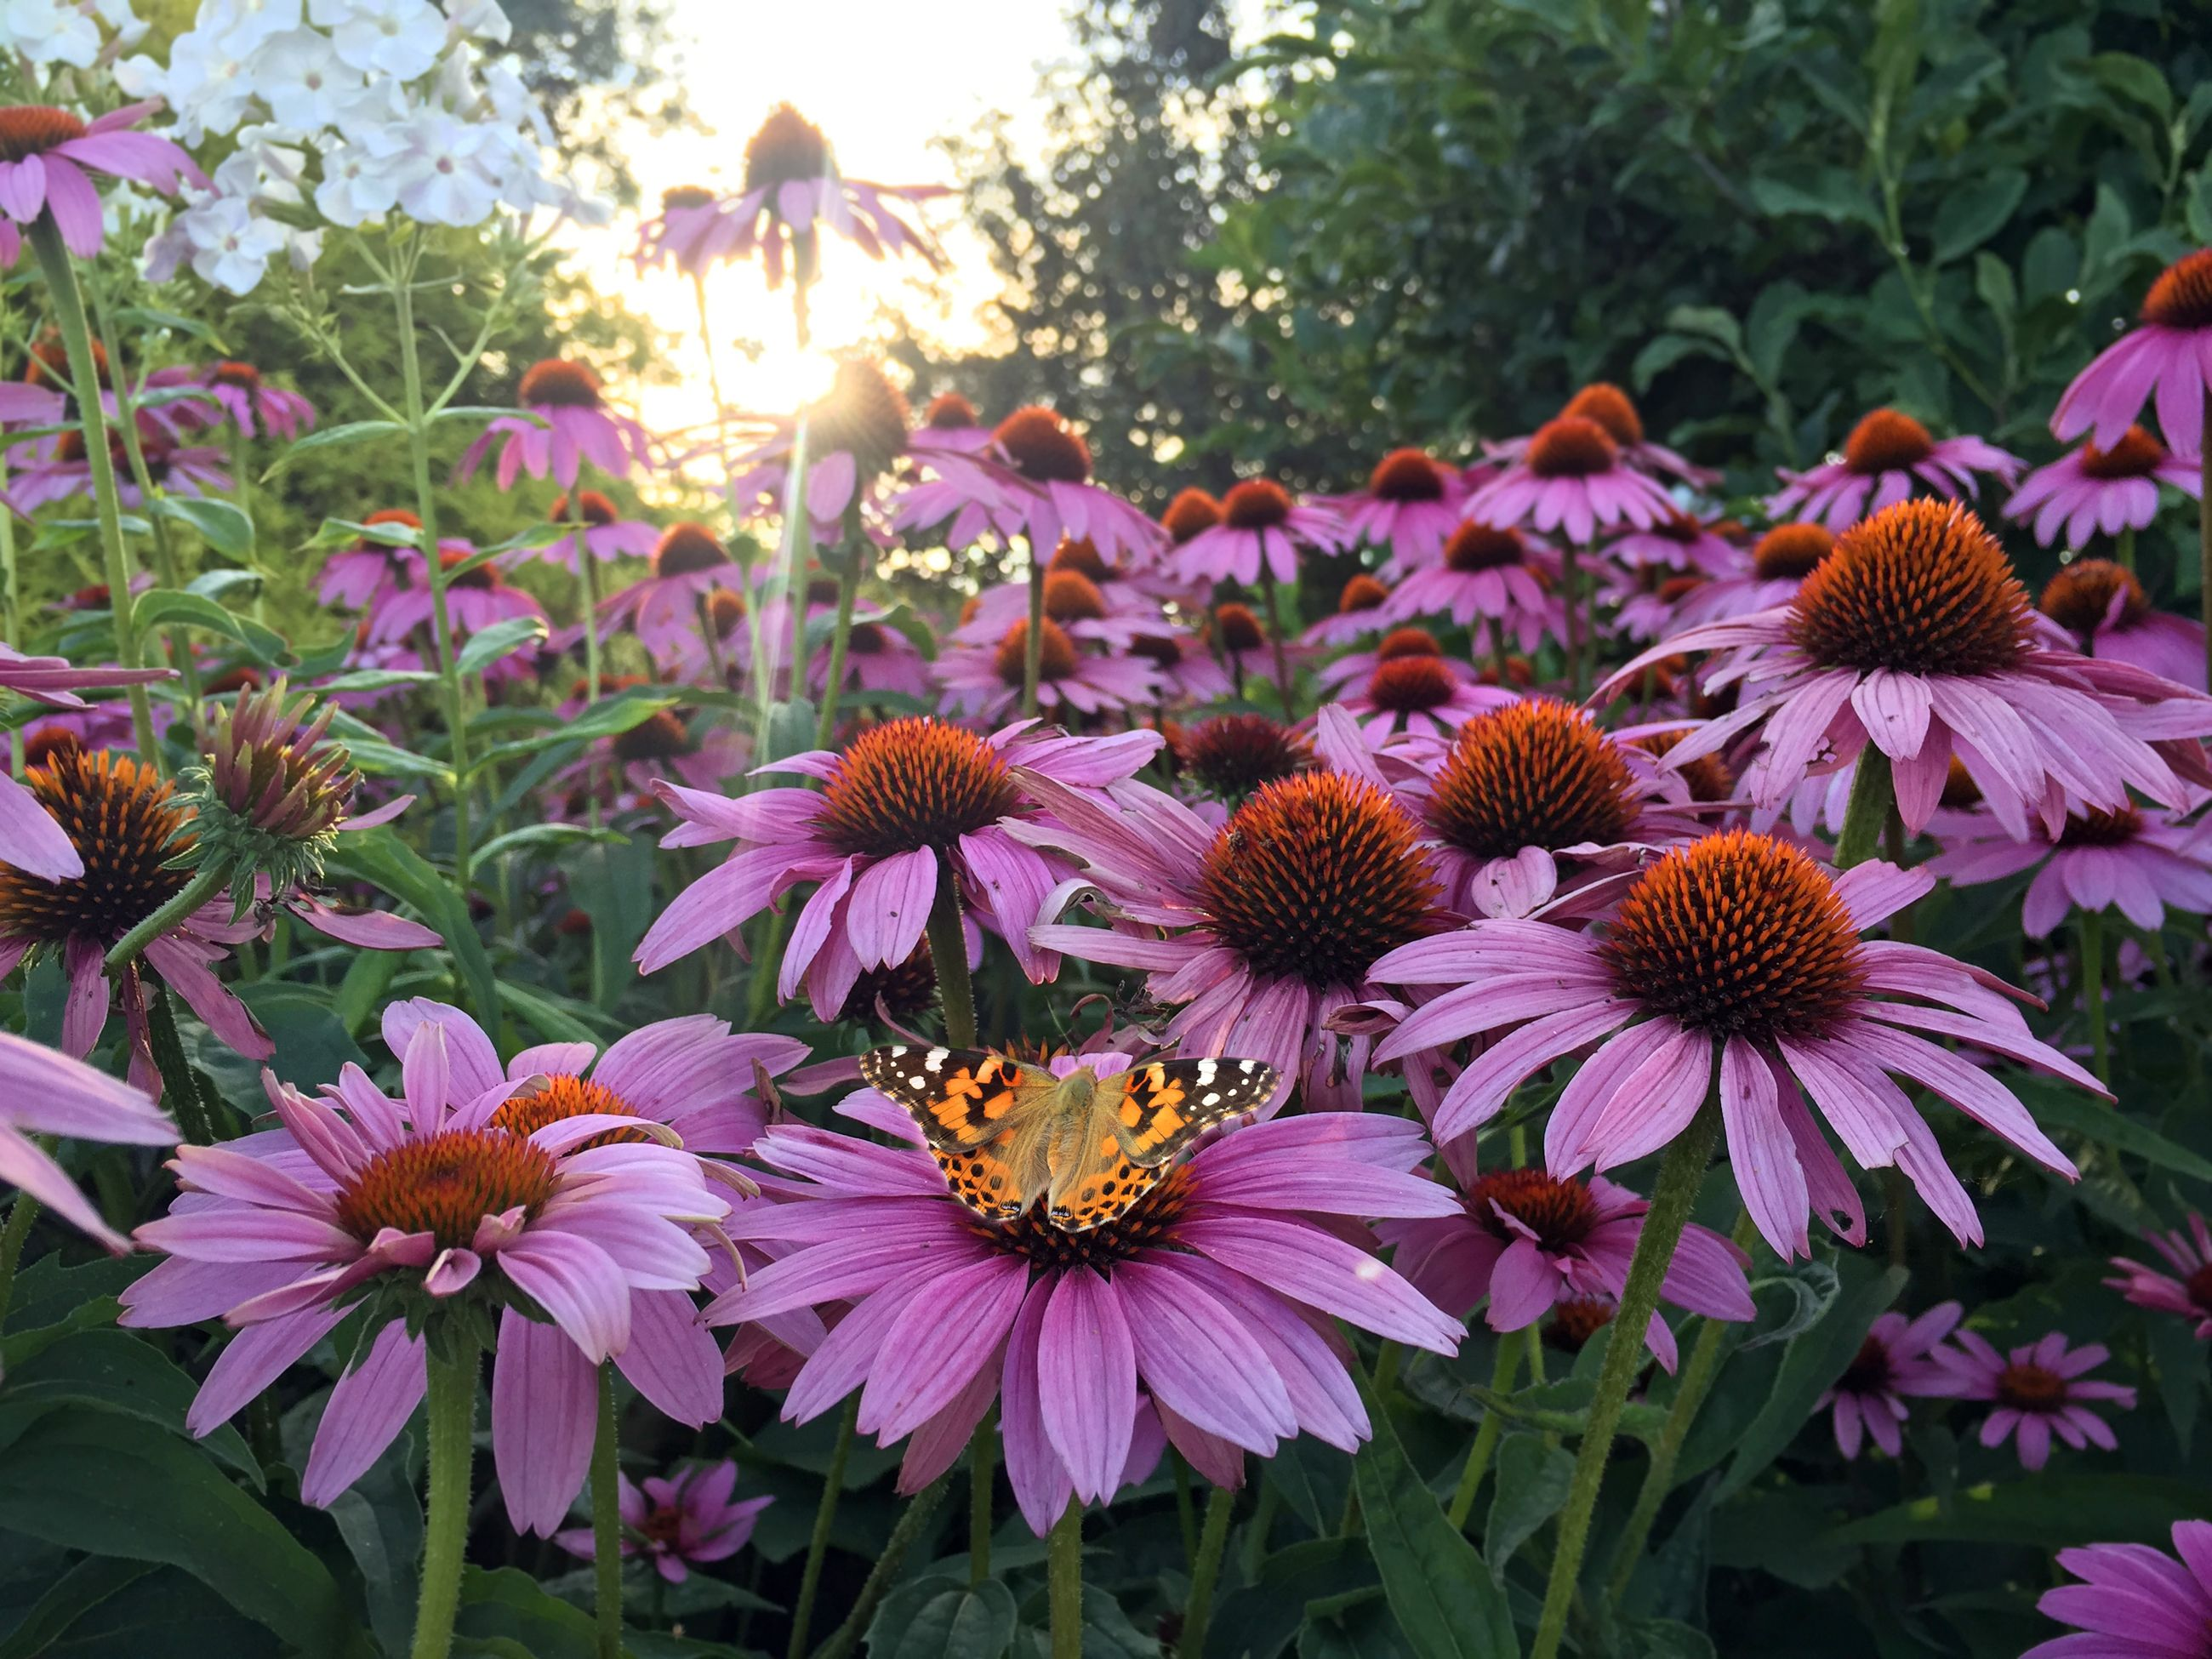 10 Best Full Sun Perennials Plants That Add Color To Your Garden